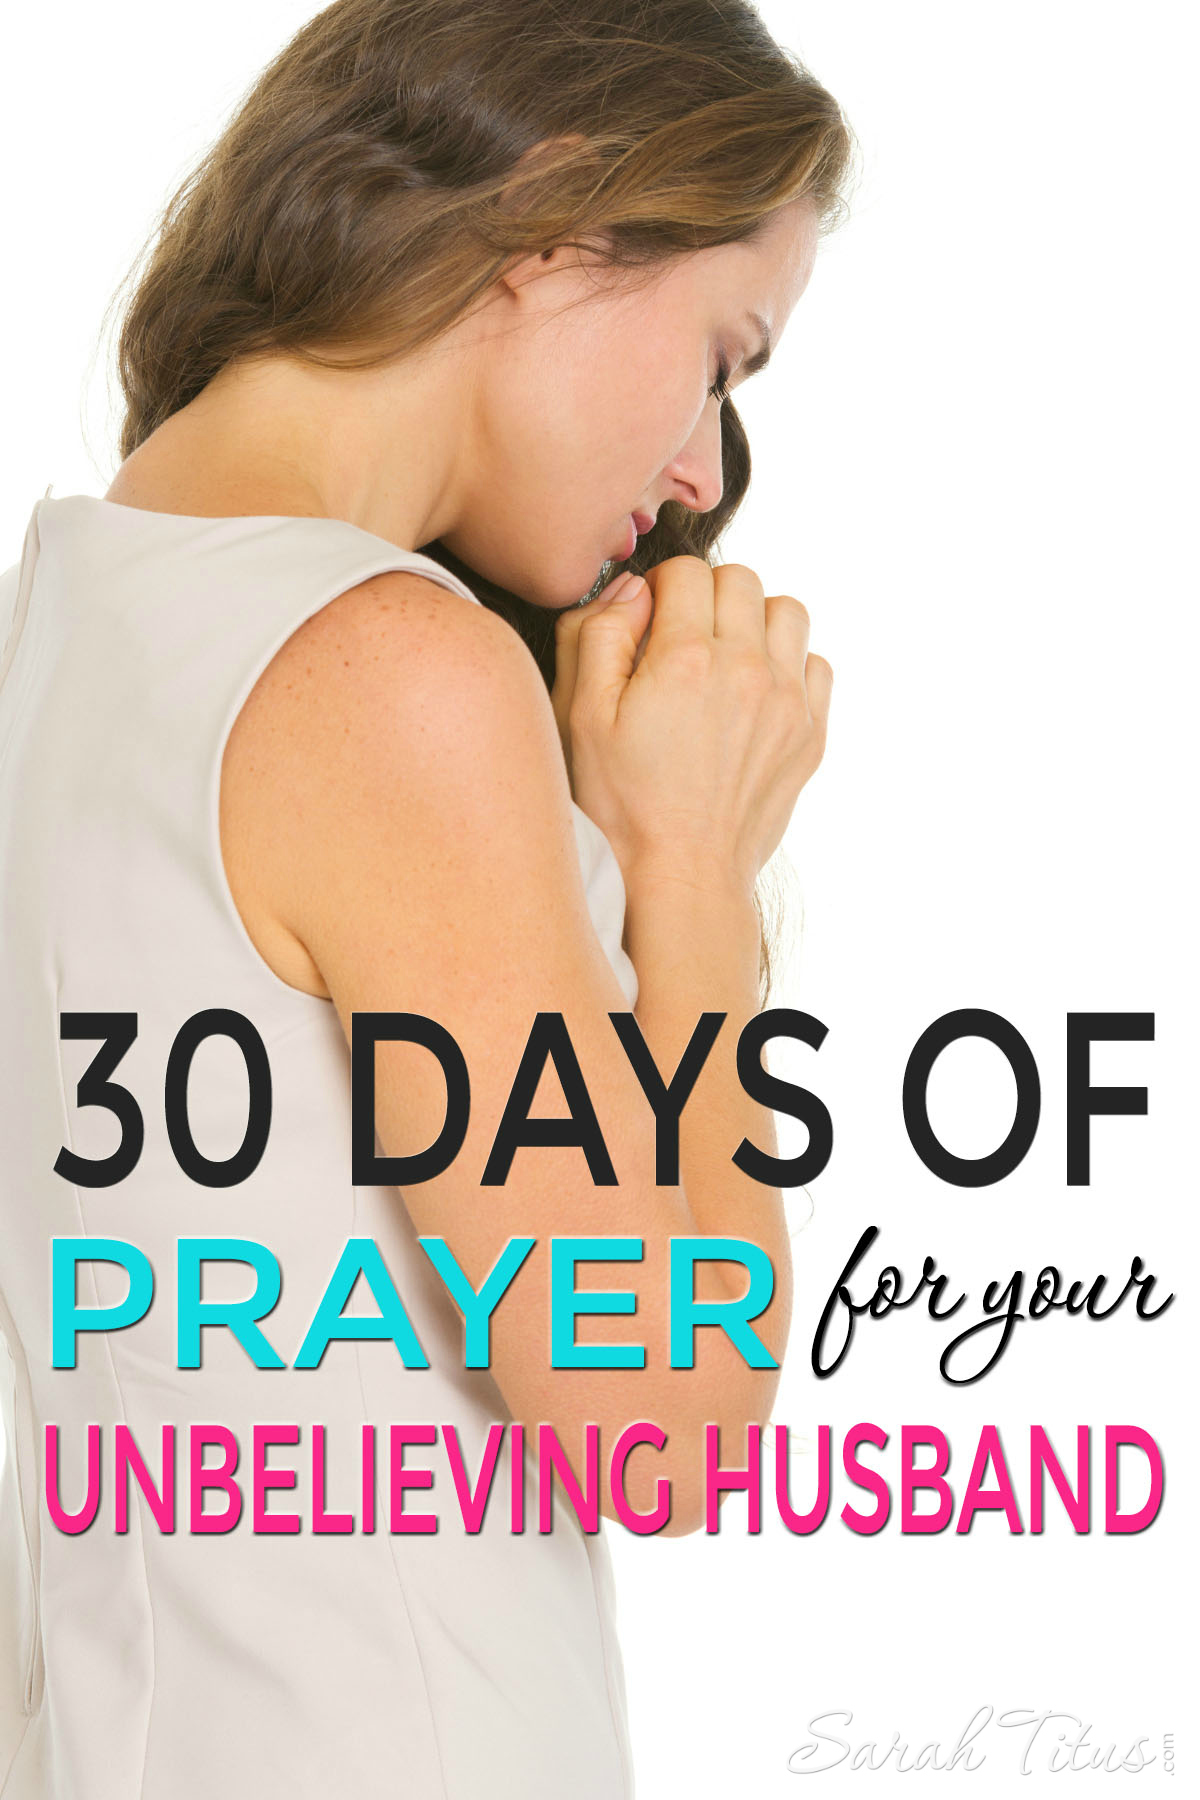 Being married to an unbeliever can be extremely difficult. Here are 30 days of prayer for your unbelieving husband that will greatly encourage your soul!